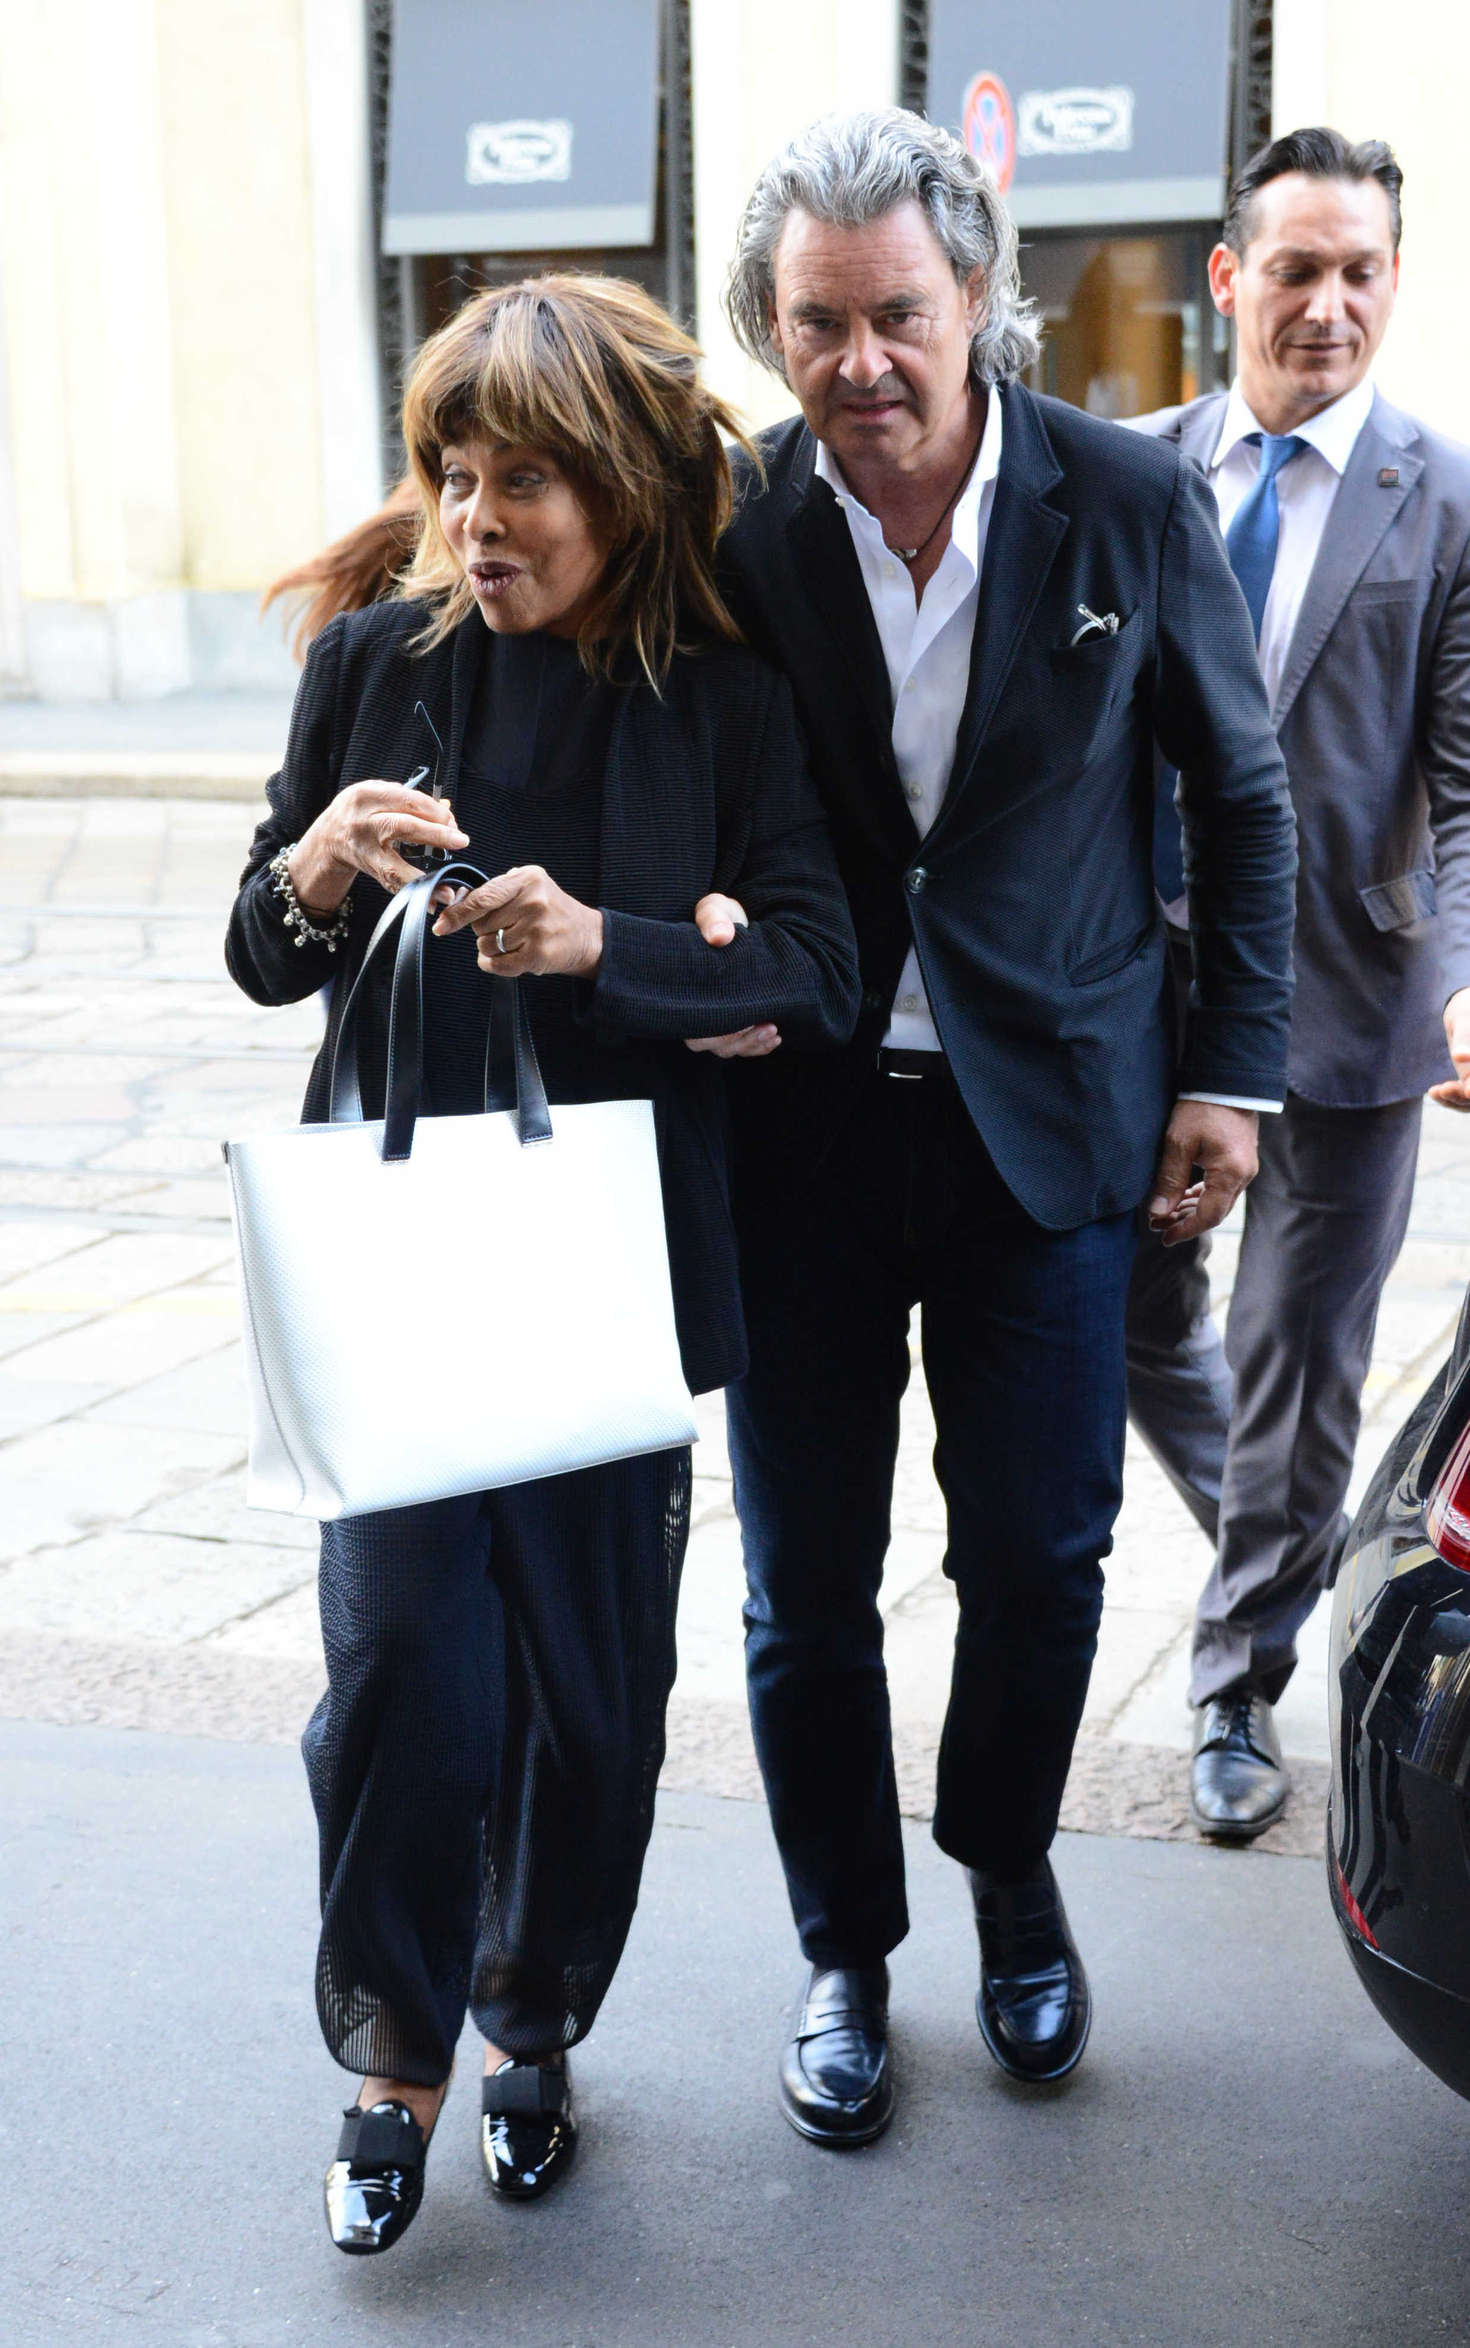 Tina Turner With Her Husband Erwin Bach On Holiday In Italy